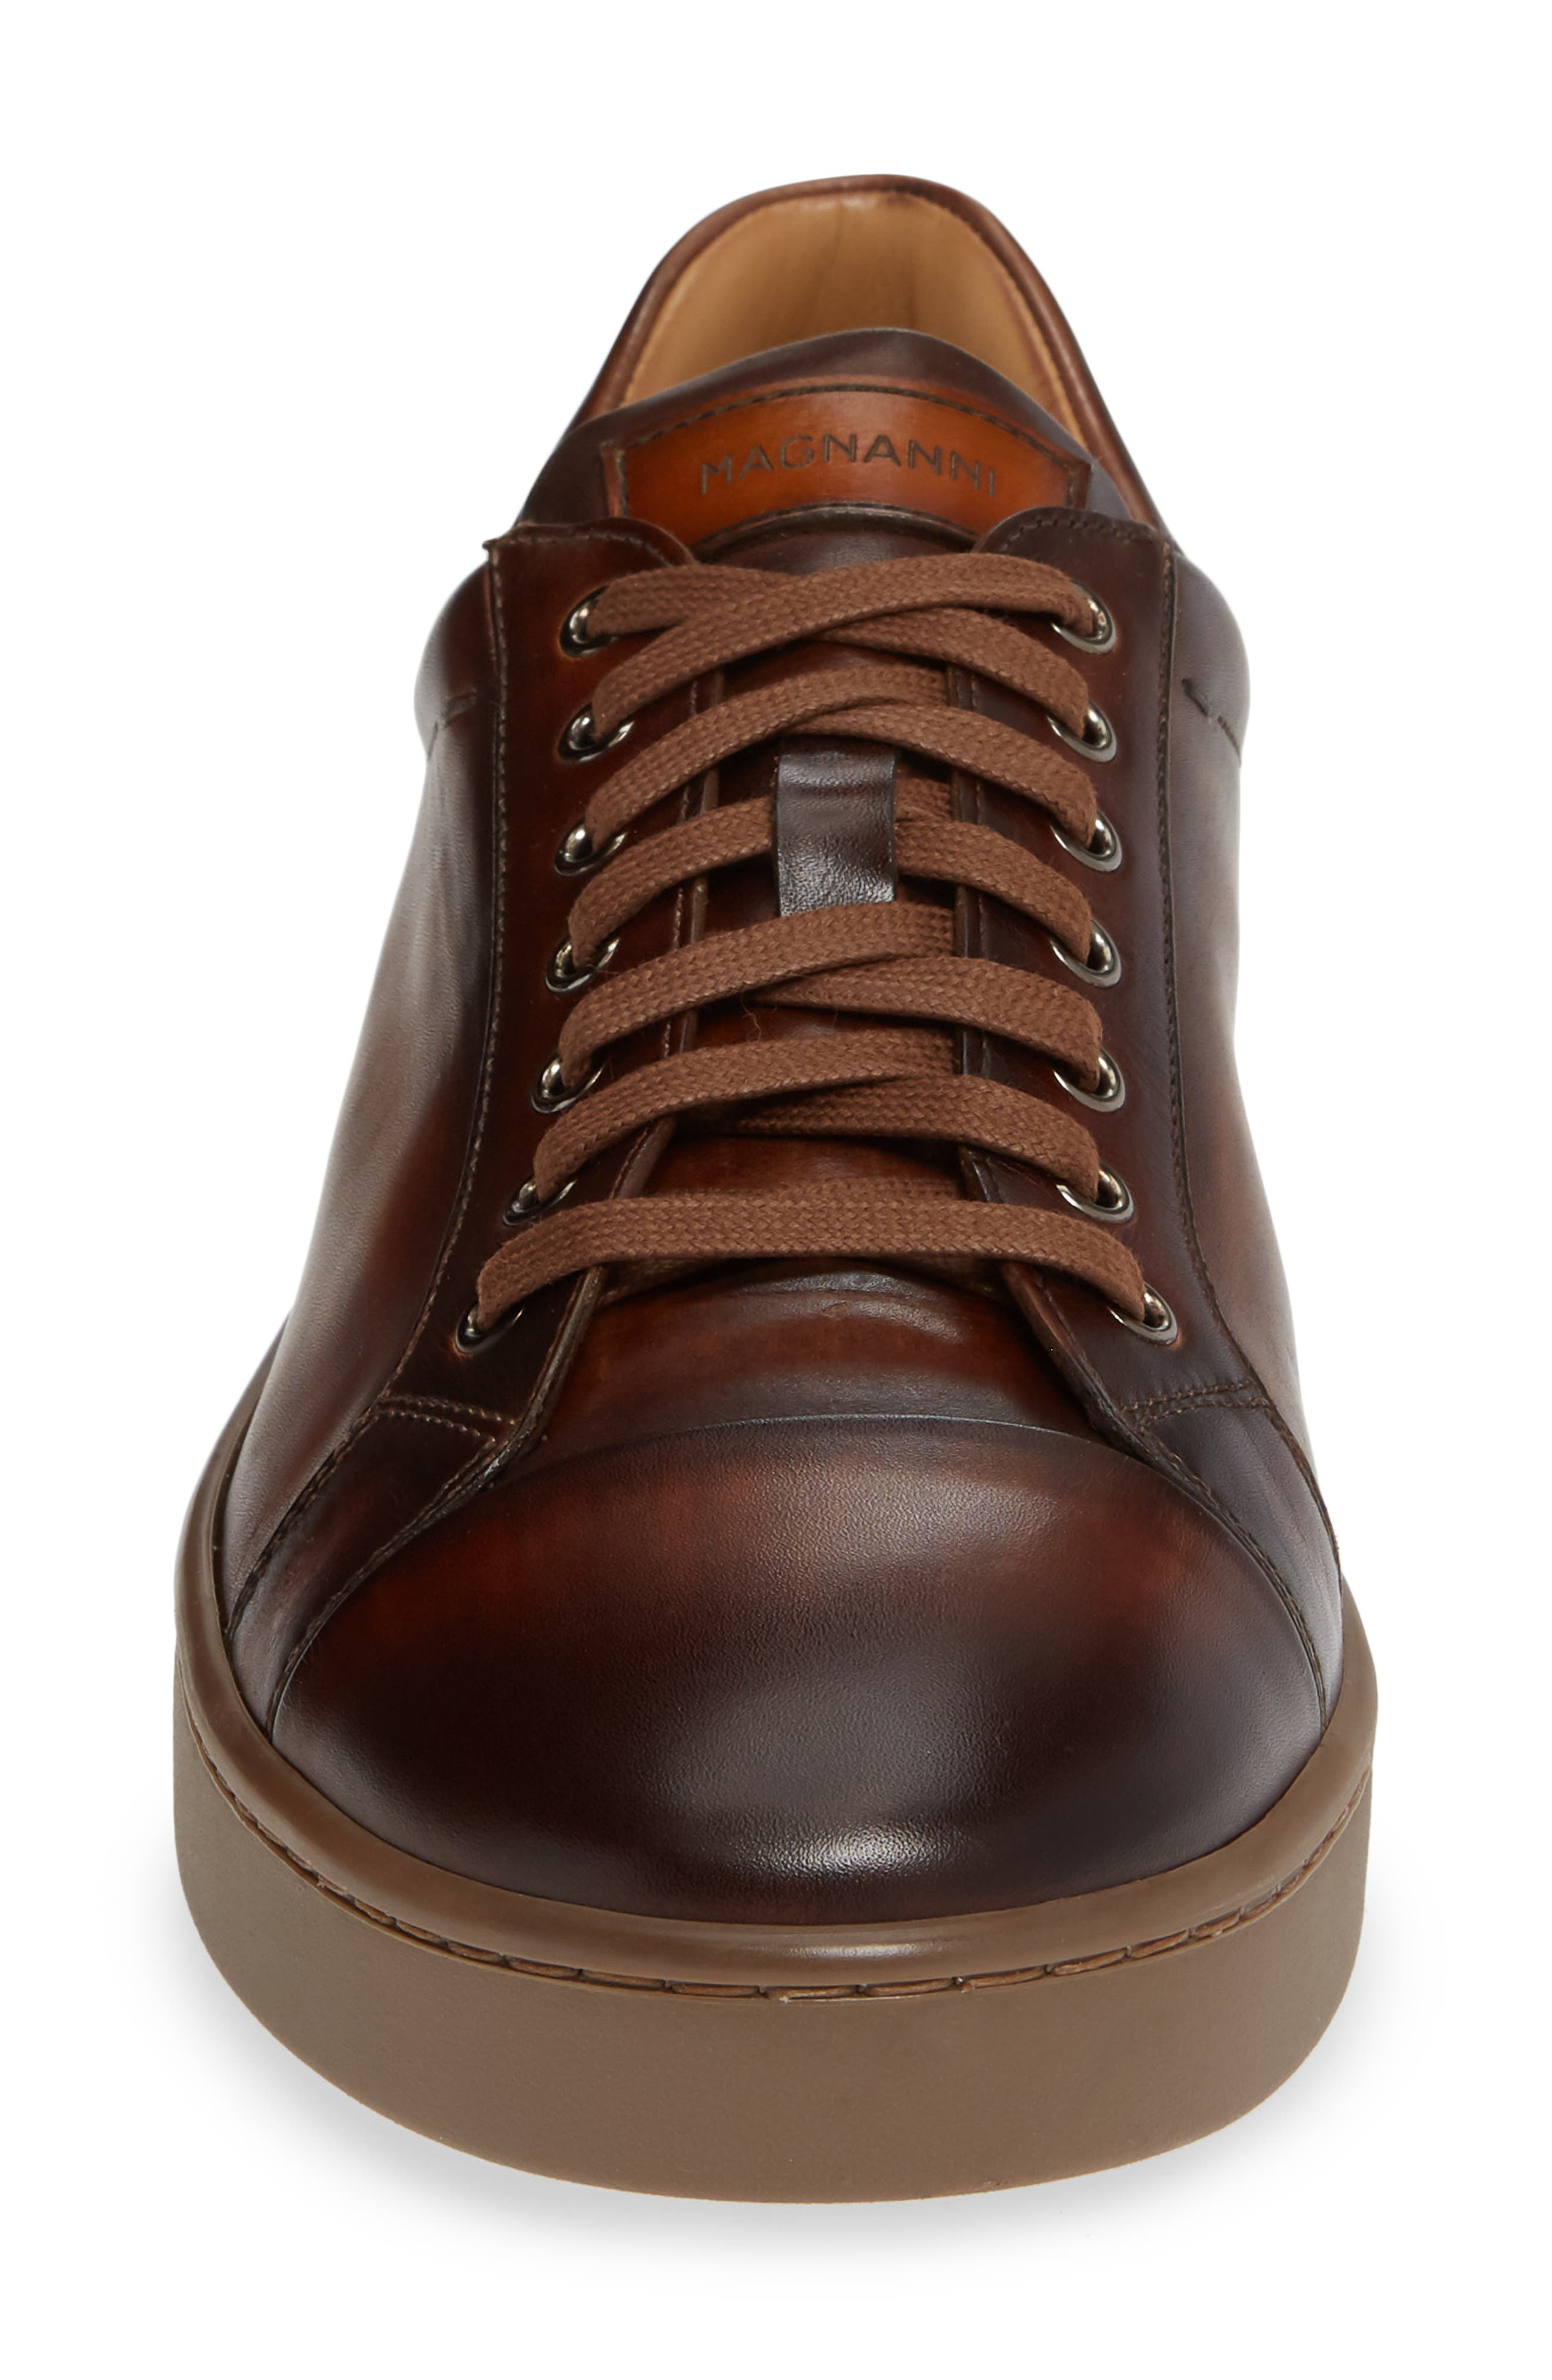 Caitin Sneaker,                             Alternate thumbnail 4, color,                             TABACO LEATHER